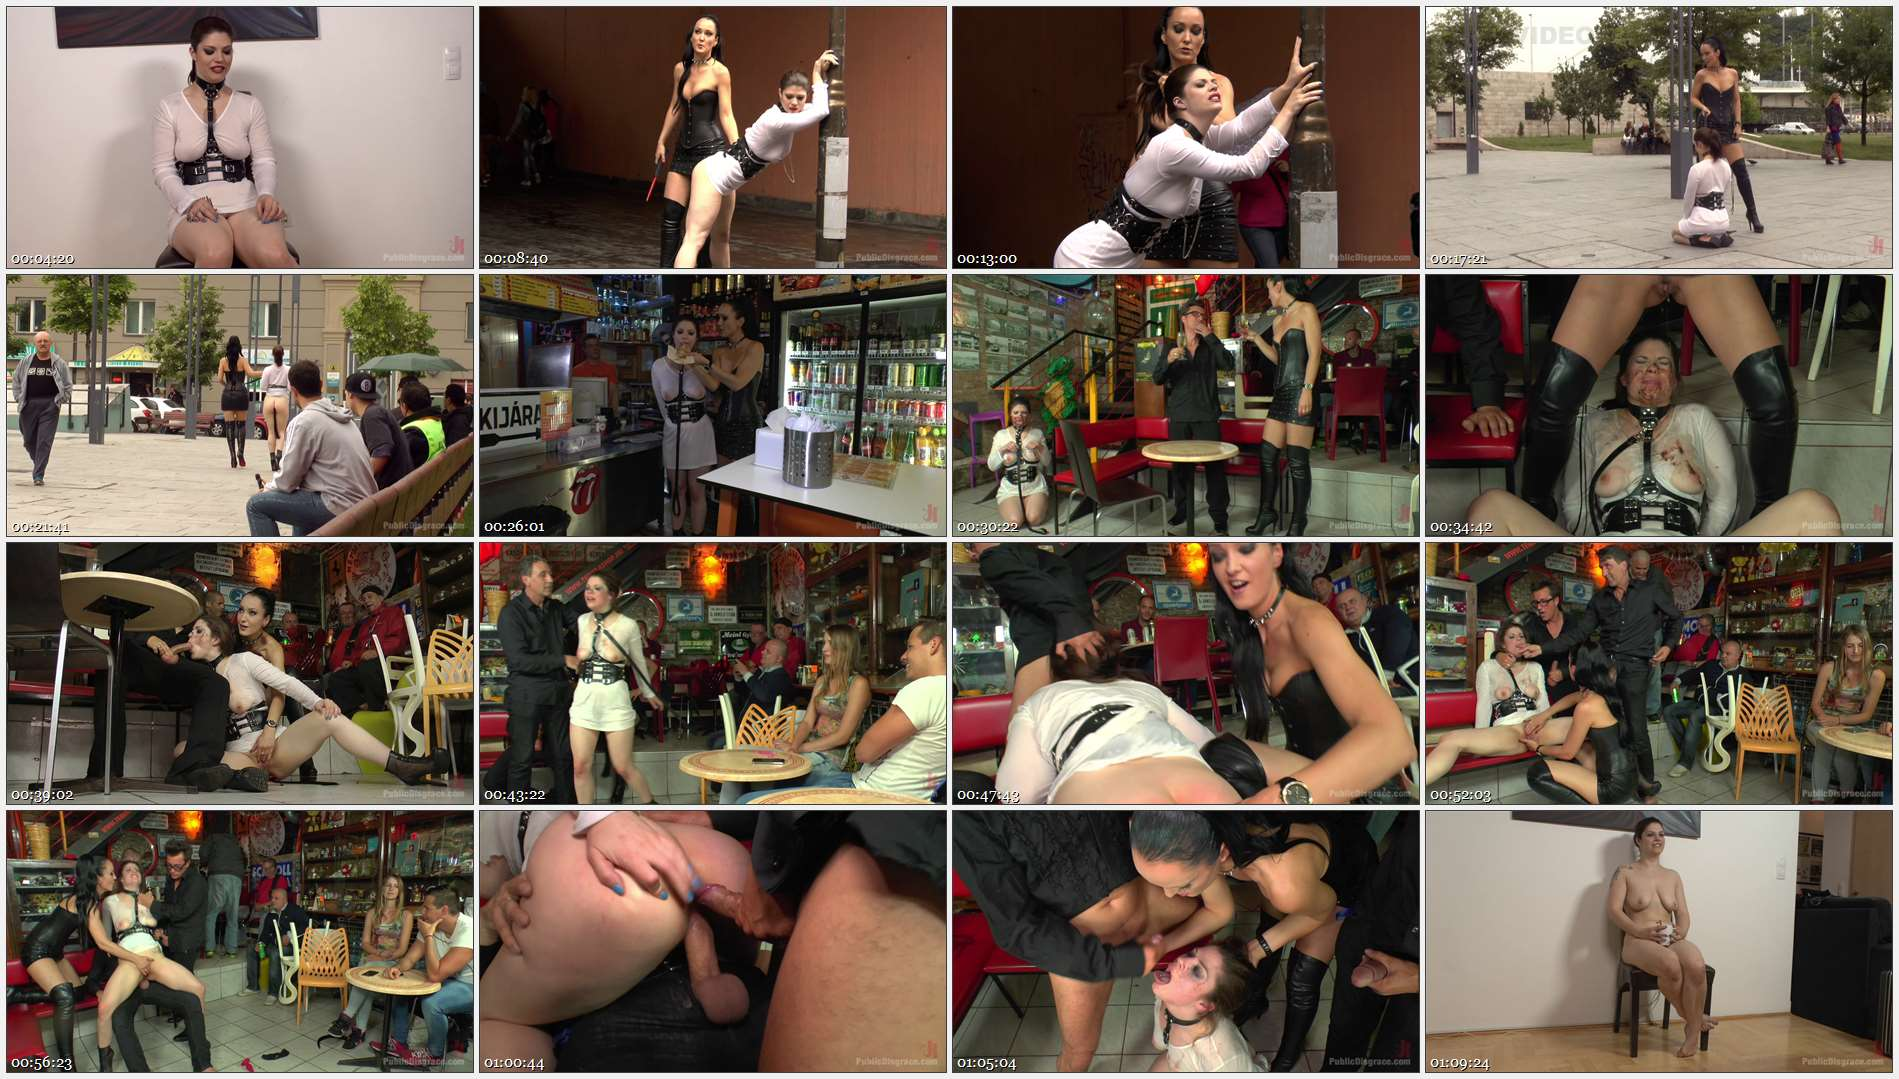 Fetish Liza – Steve Holmes – Conny Dachs – Lucia Love – Disgusting Piss Guzzling Slut Paraded Through Budapest